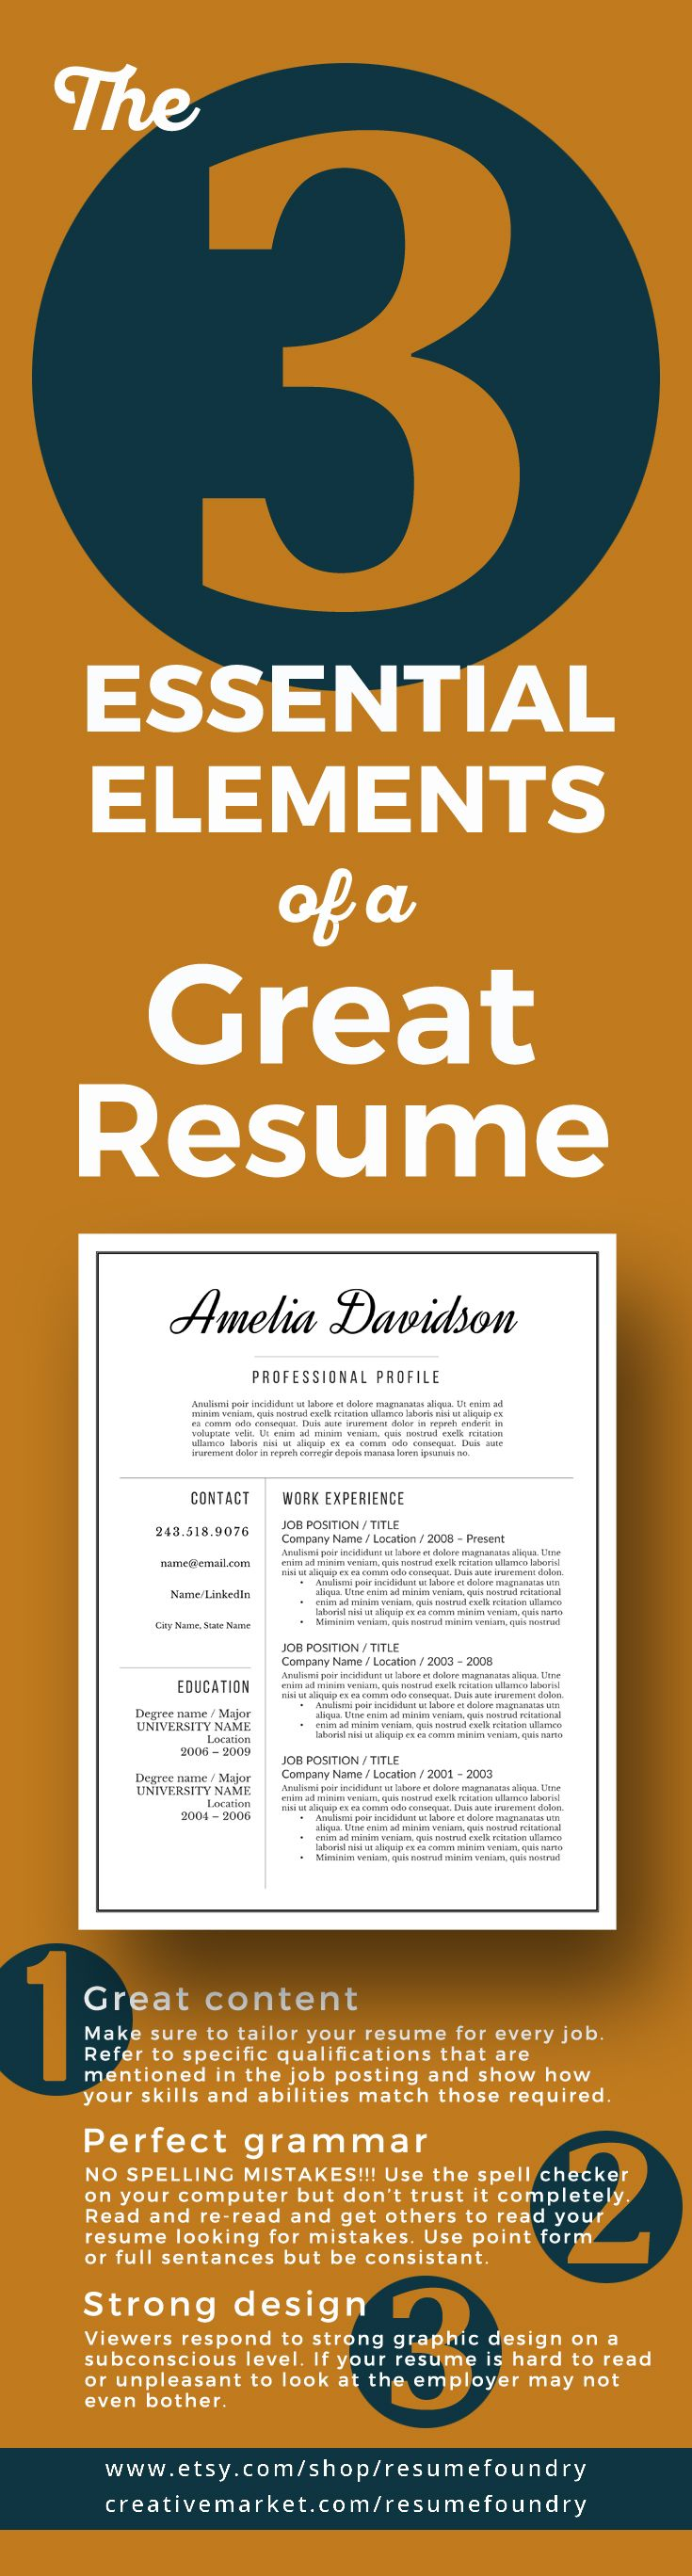 making resume format%0A Make sure to include these three essential elements to perfect your resume   Resume Foundry